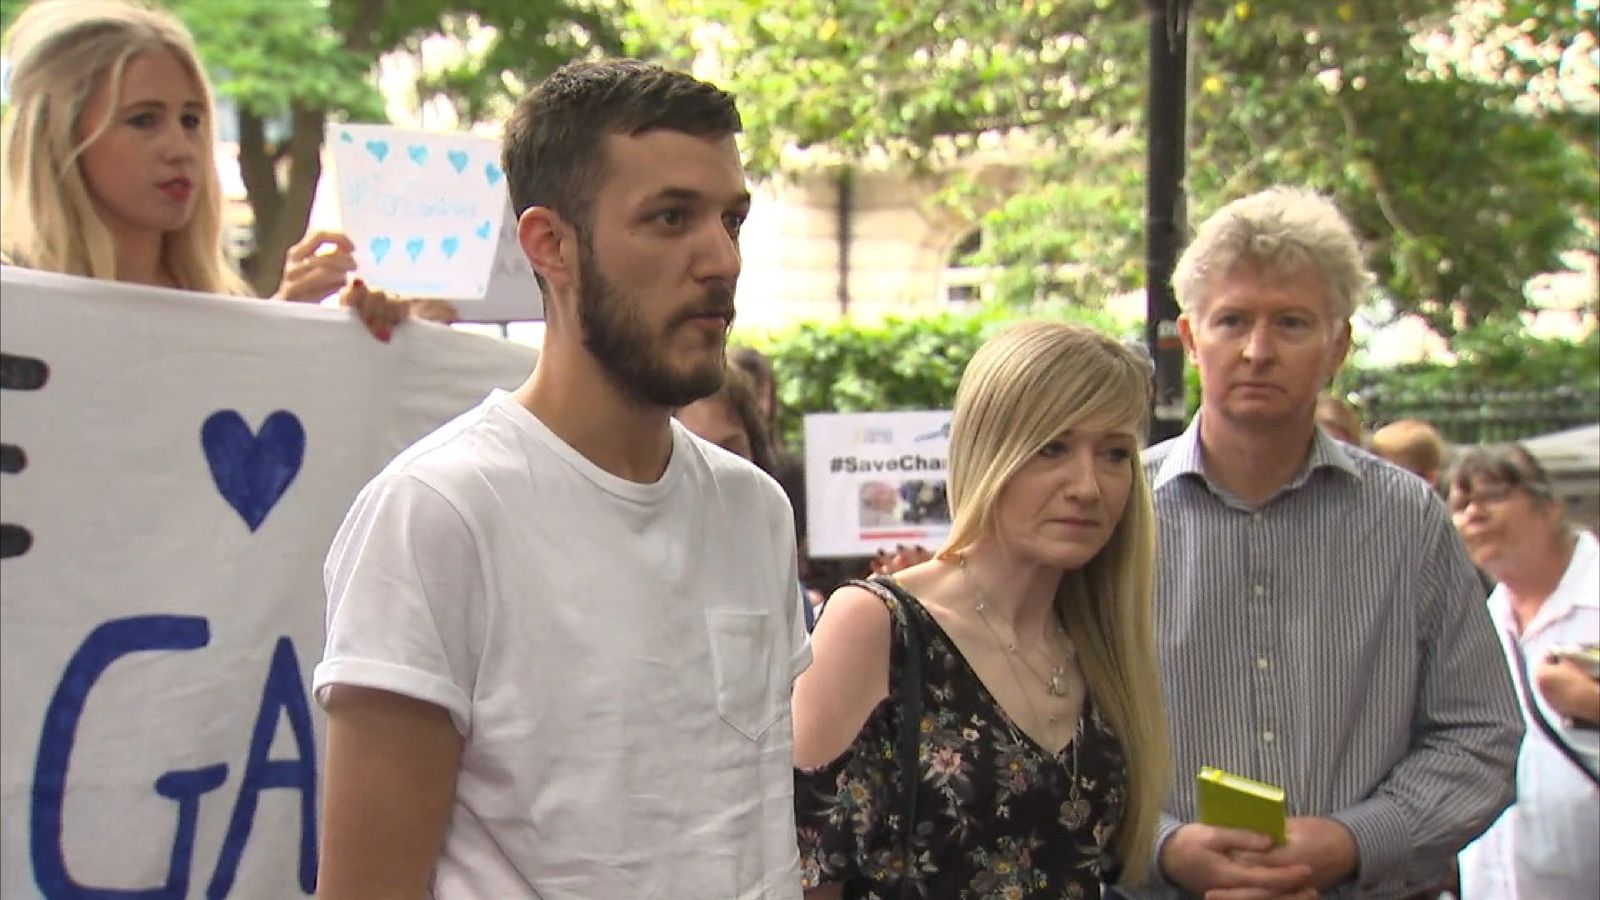 United Kingdom hospital seeks court hearing on new Charlie Gard evidence